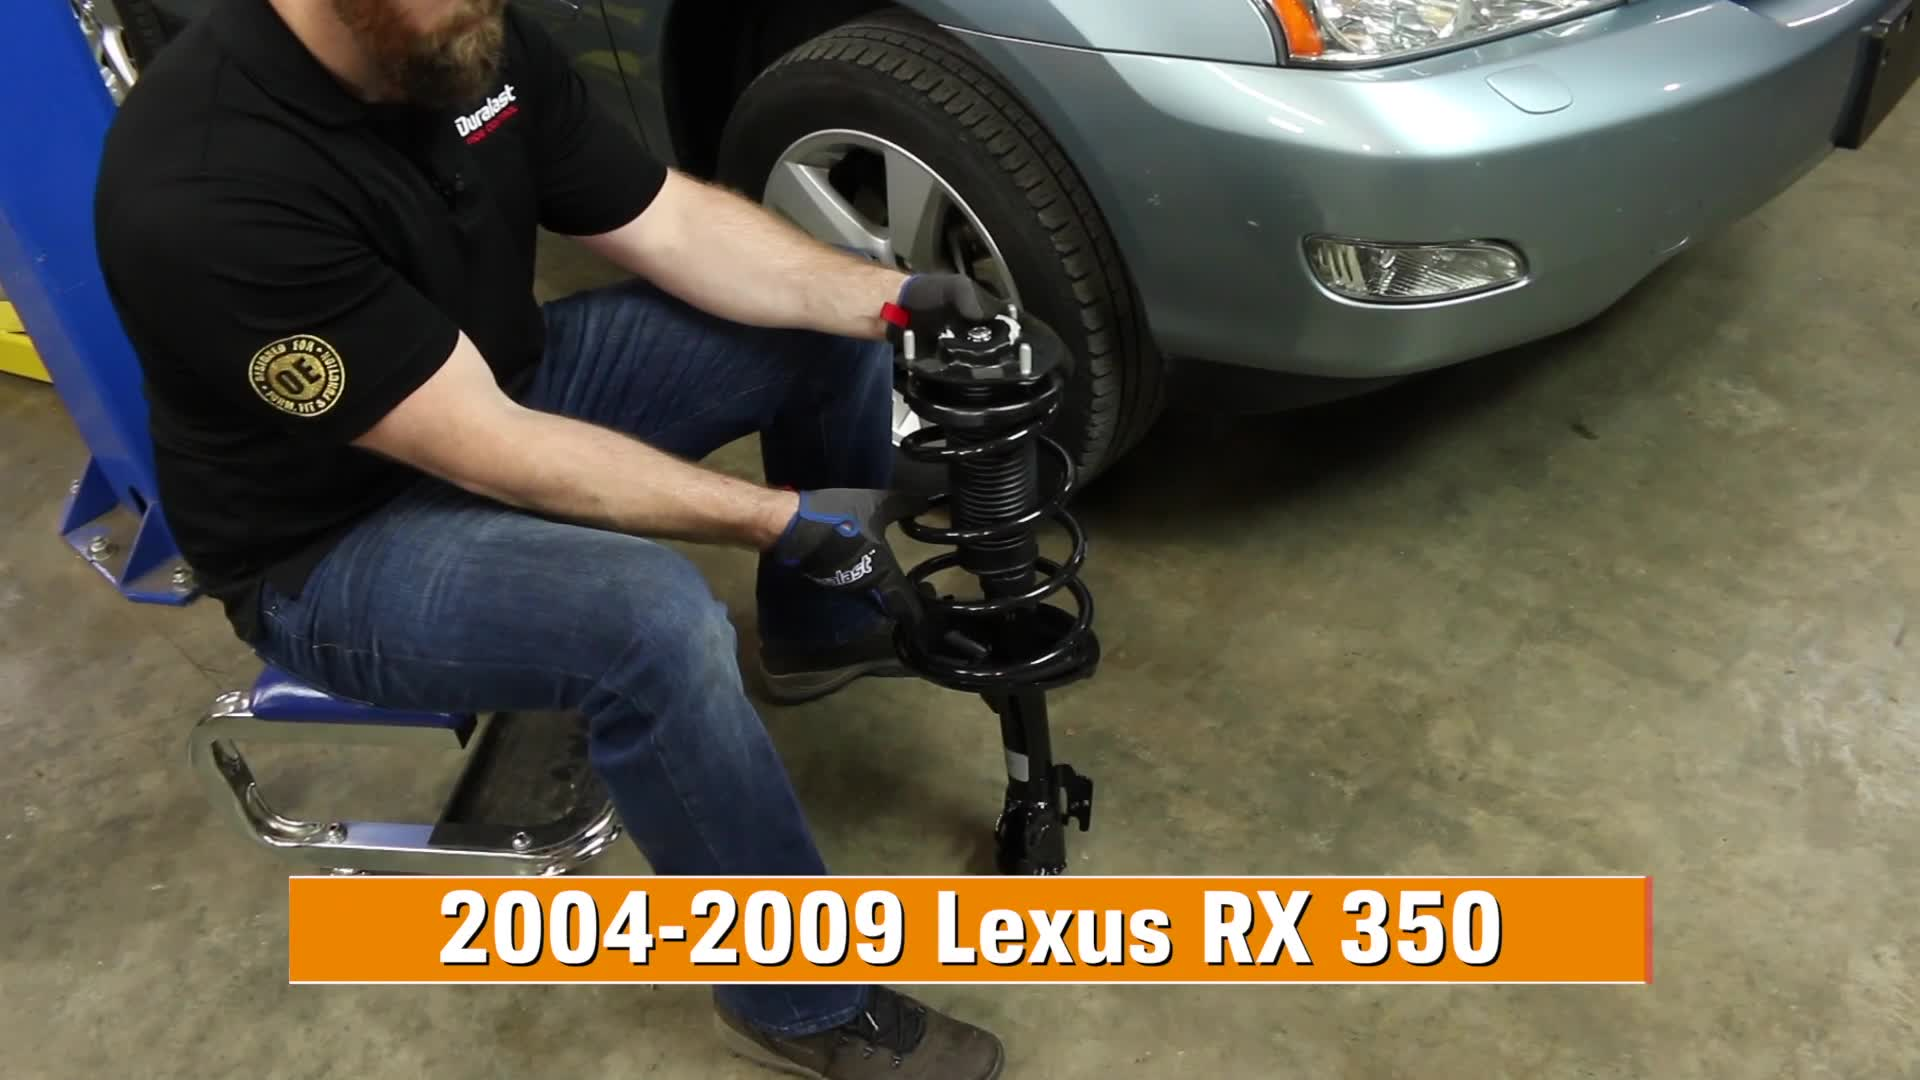 07 Lexus Rx 350 Engine Diagram 07 Free Engine Image For User Manual